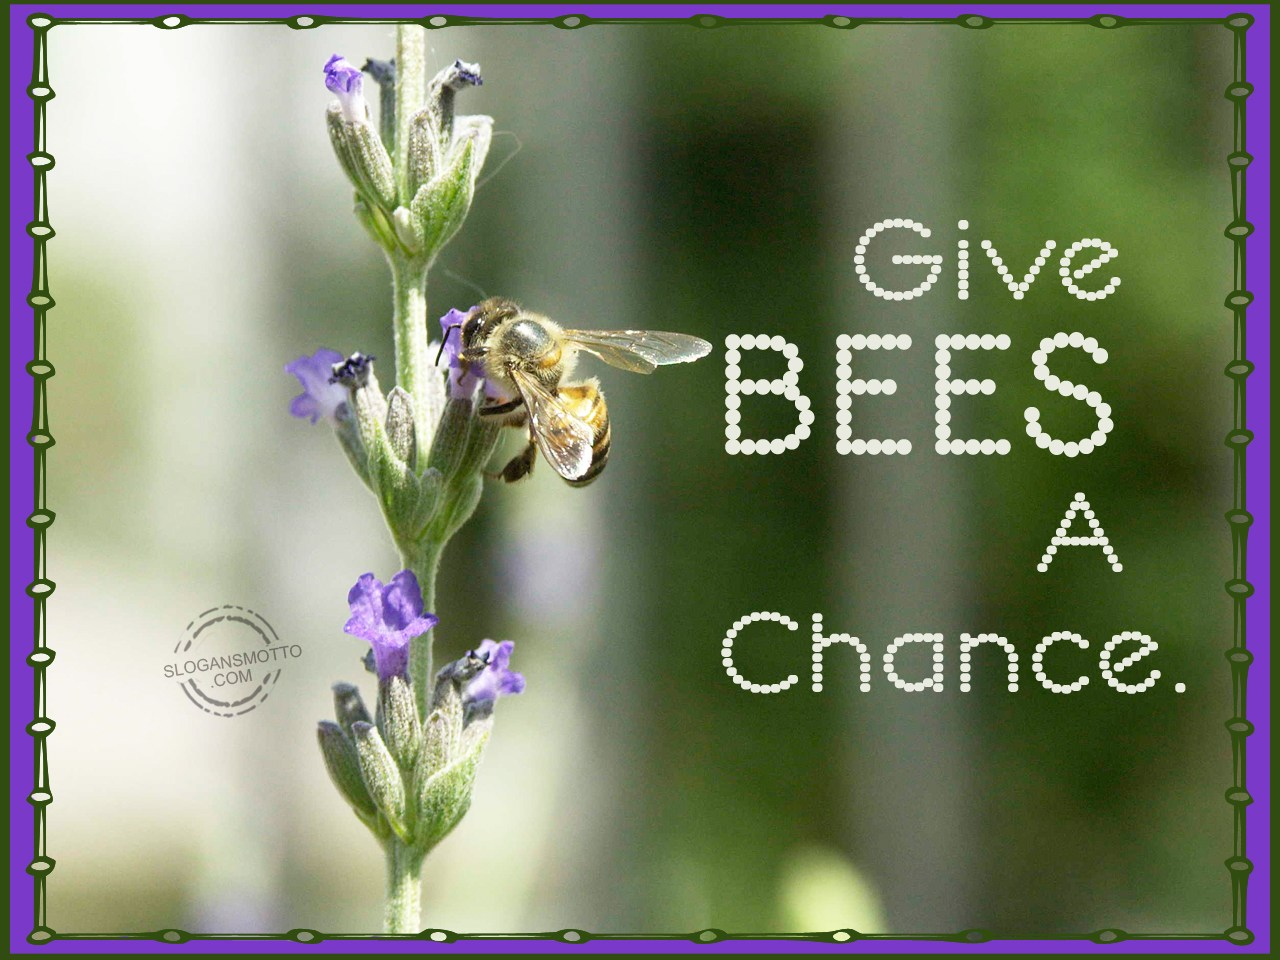 chance and coincidence in little bee All coincidences have meaning nothing happens by chance have you  one  small change, even a seemingly tiny insignificant change has.